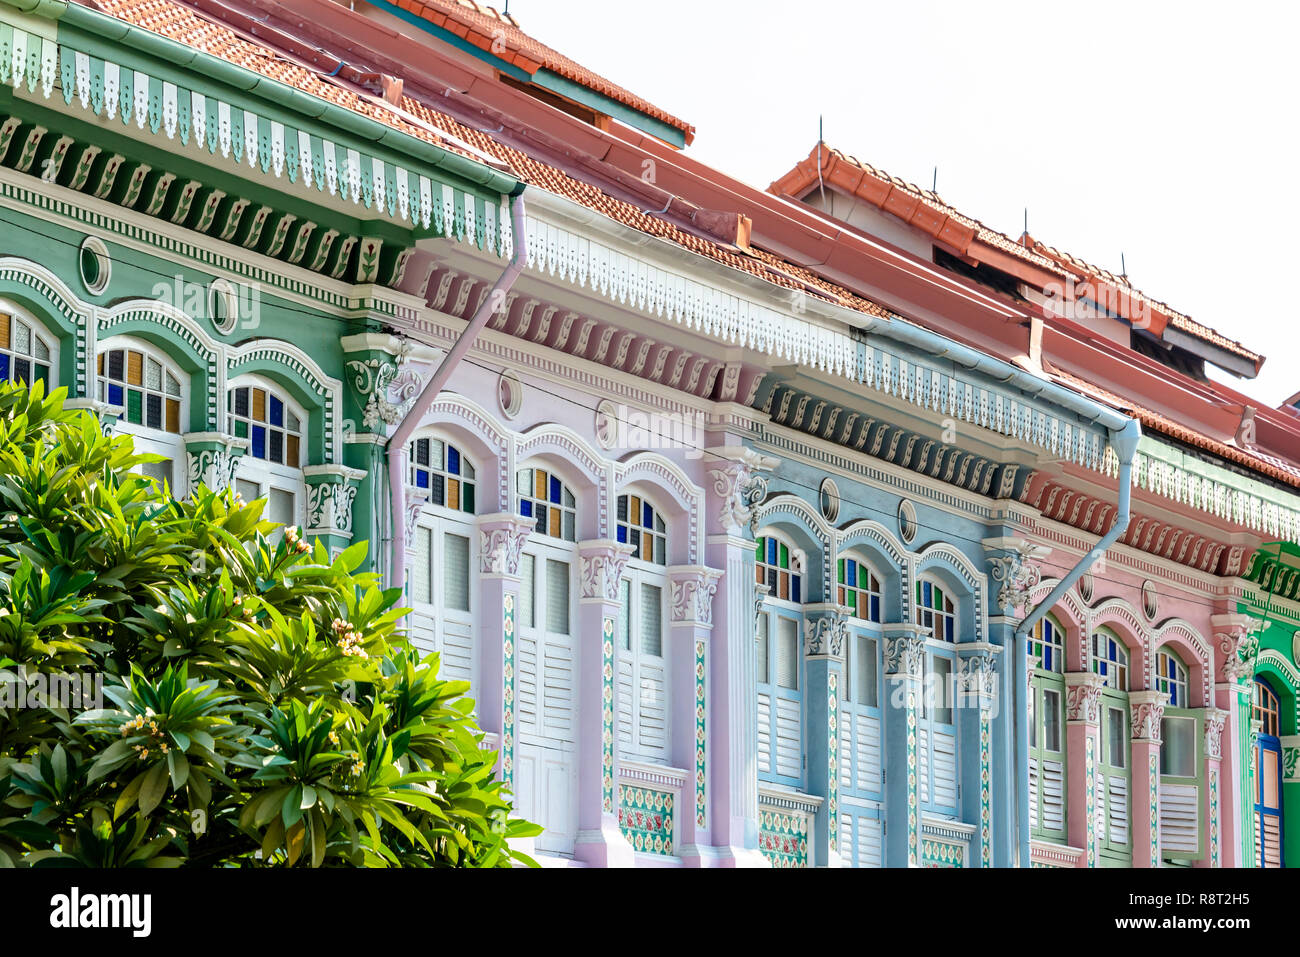 Architecture details of Koon Seng Road pastel hue traditional Paranakan shophouses, Katong, Singapore Stock Photo